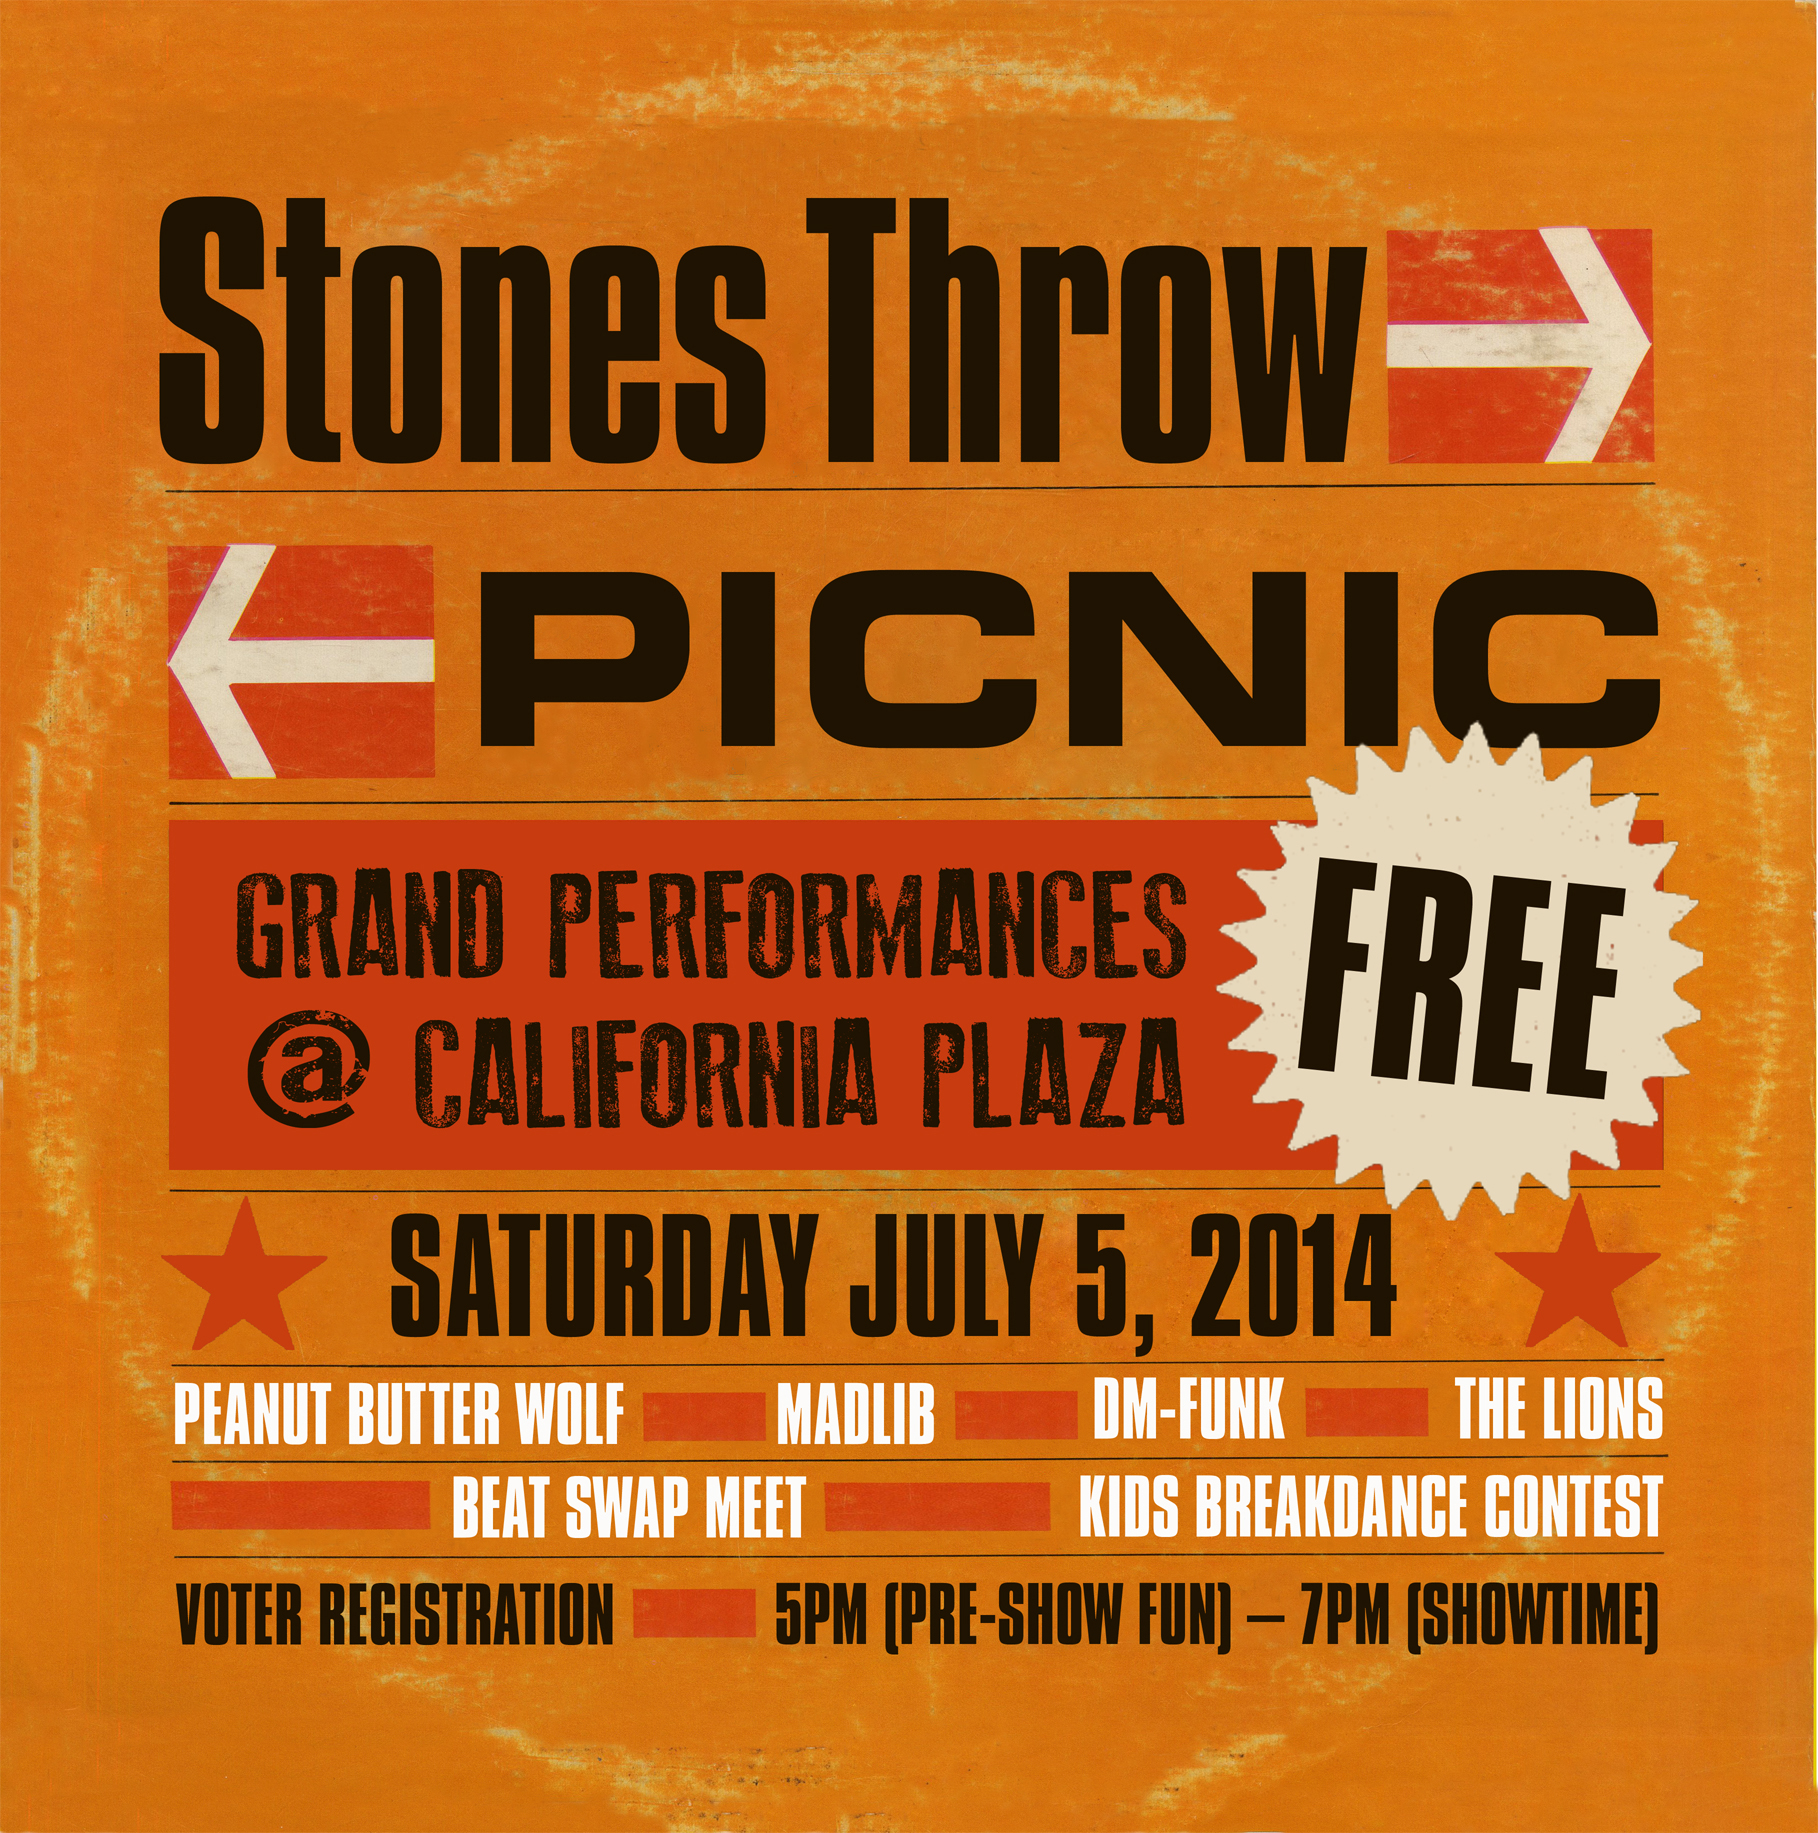 STONES THROW FLYER.jpg